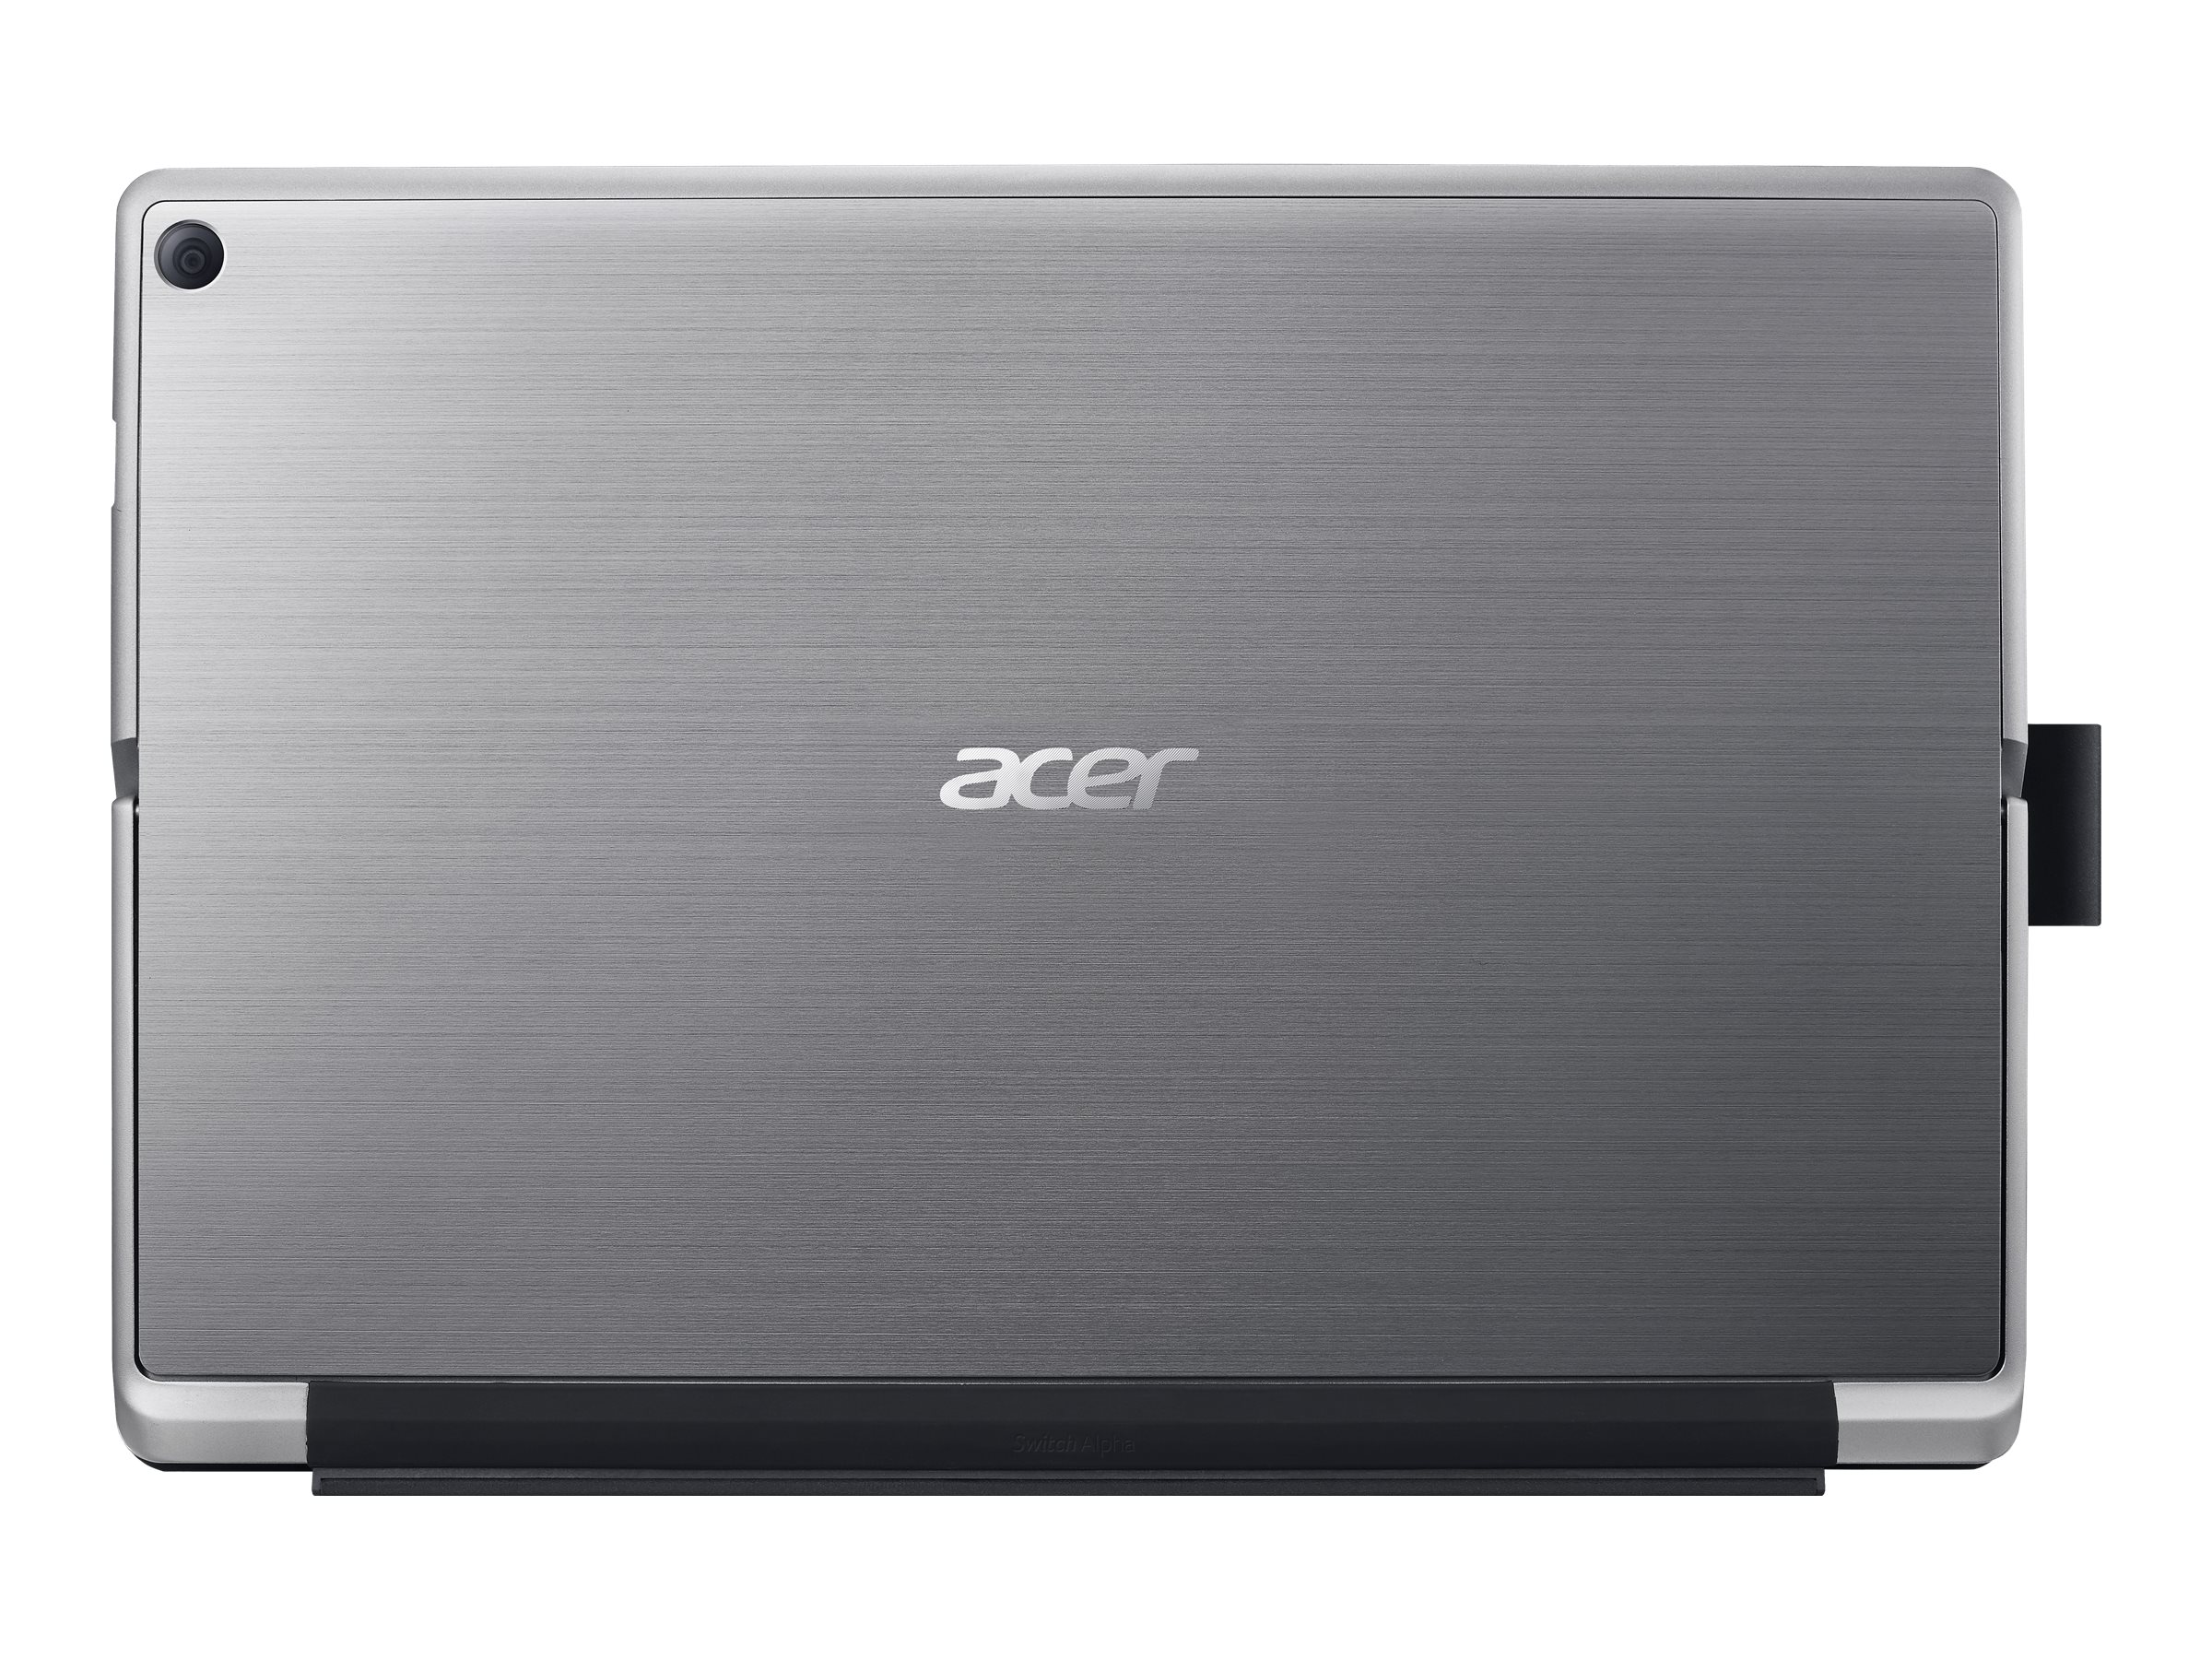 Acer Aspire Switch Alpha 12 SA5-271-57QF 2.3GHz processor Windows 10 Home Edition 64-bit, NT.LCDAA.005